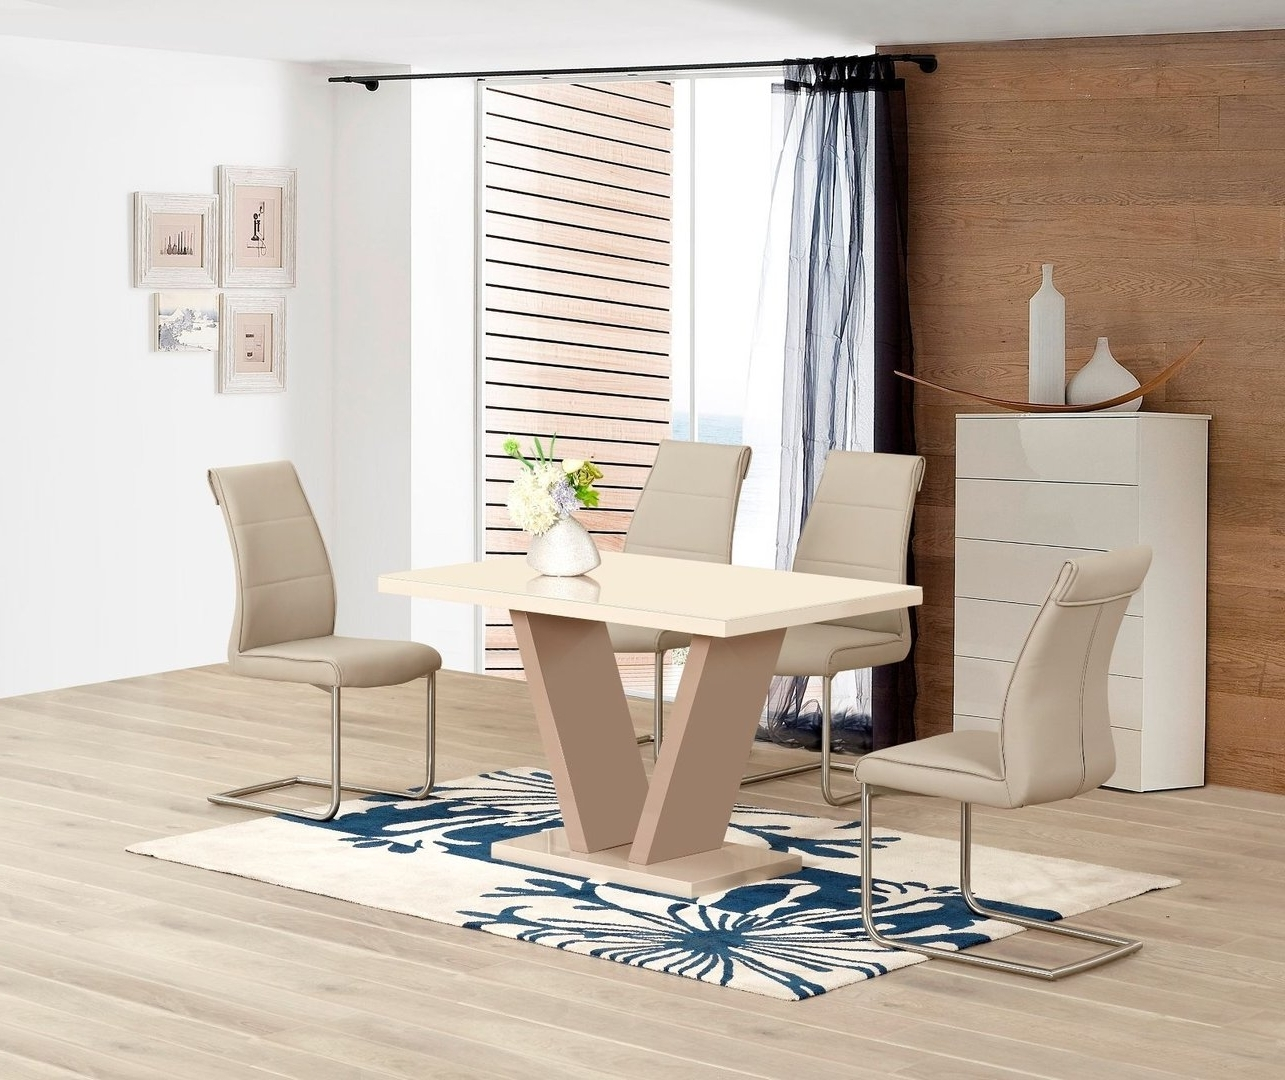 Most Recently Released Cream High Gloss Dining Table And 4 Taupe Chairs – Homegenies Throughout Cream High Gloss Dining Tables (View 19 of 25)